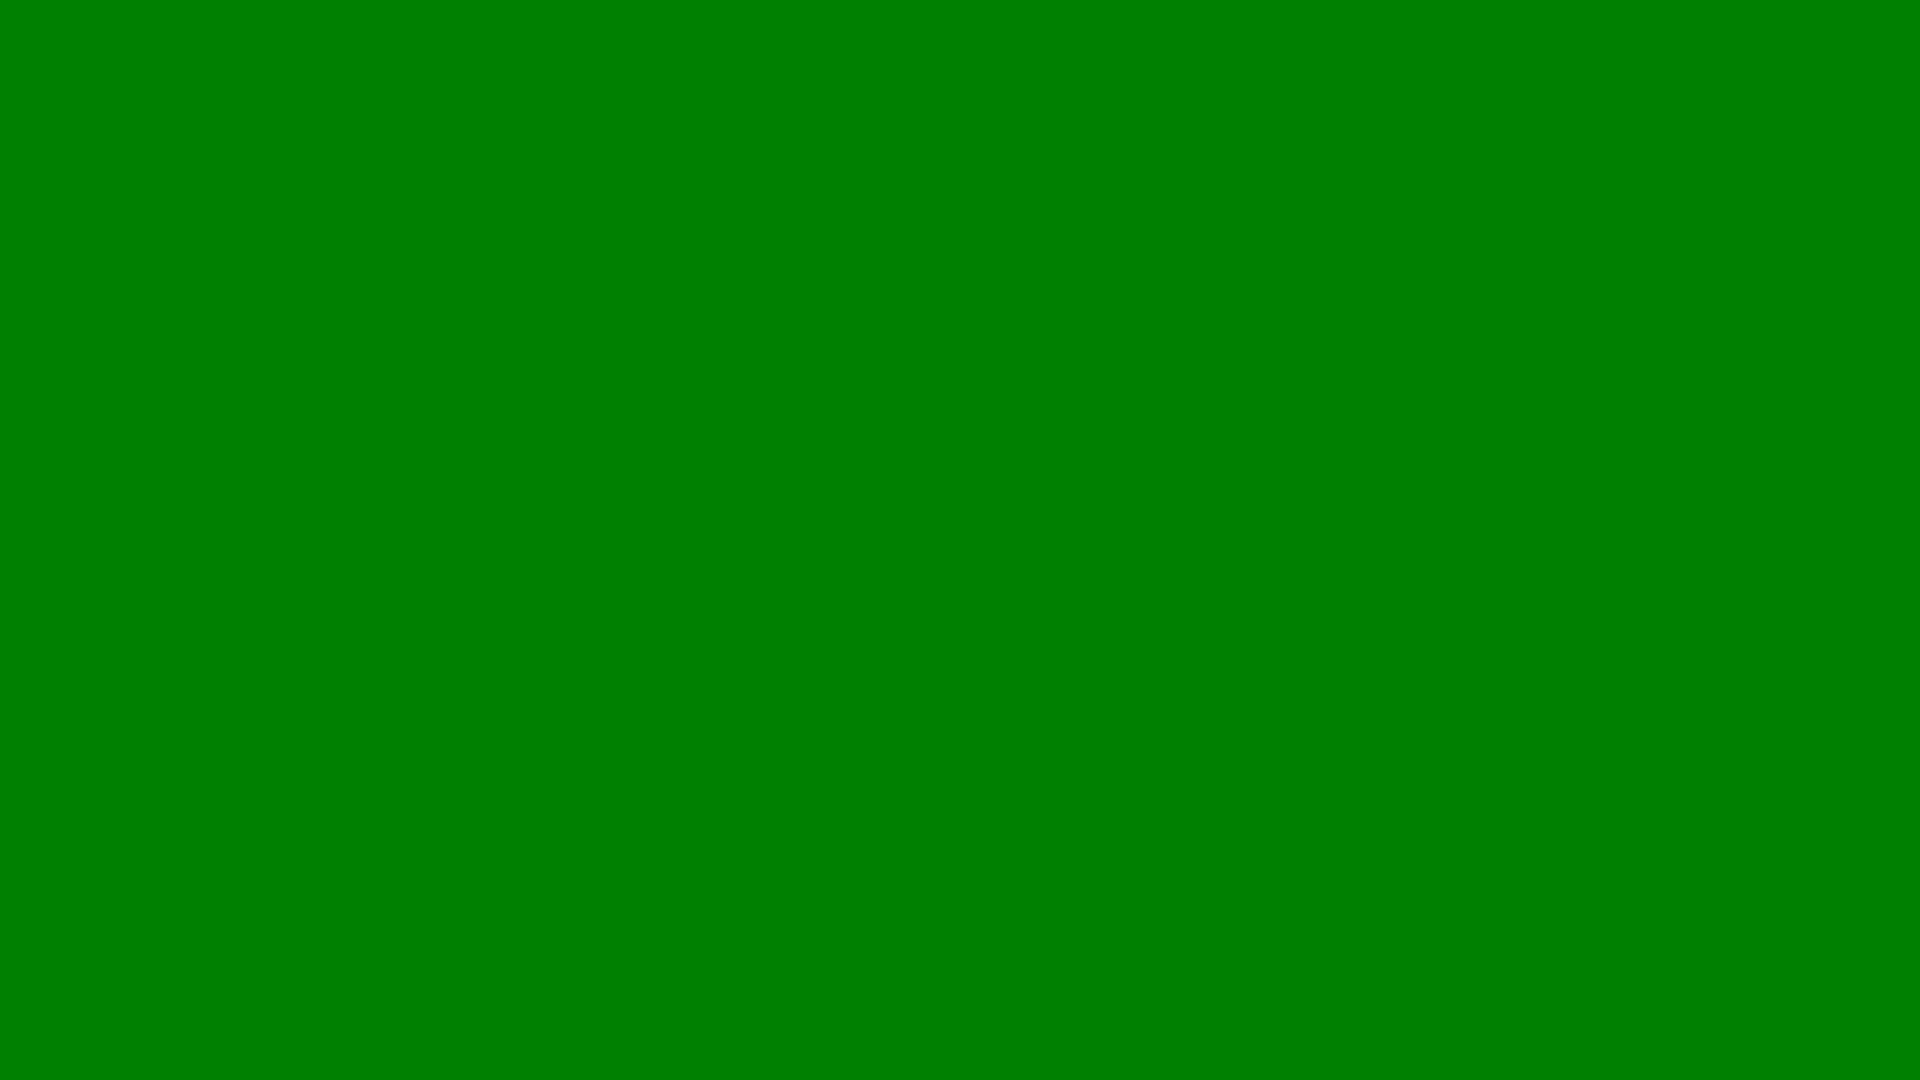 solid green background related - photo #17